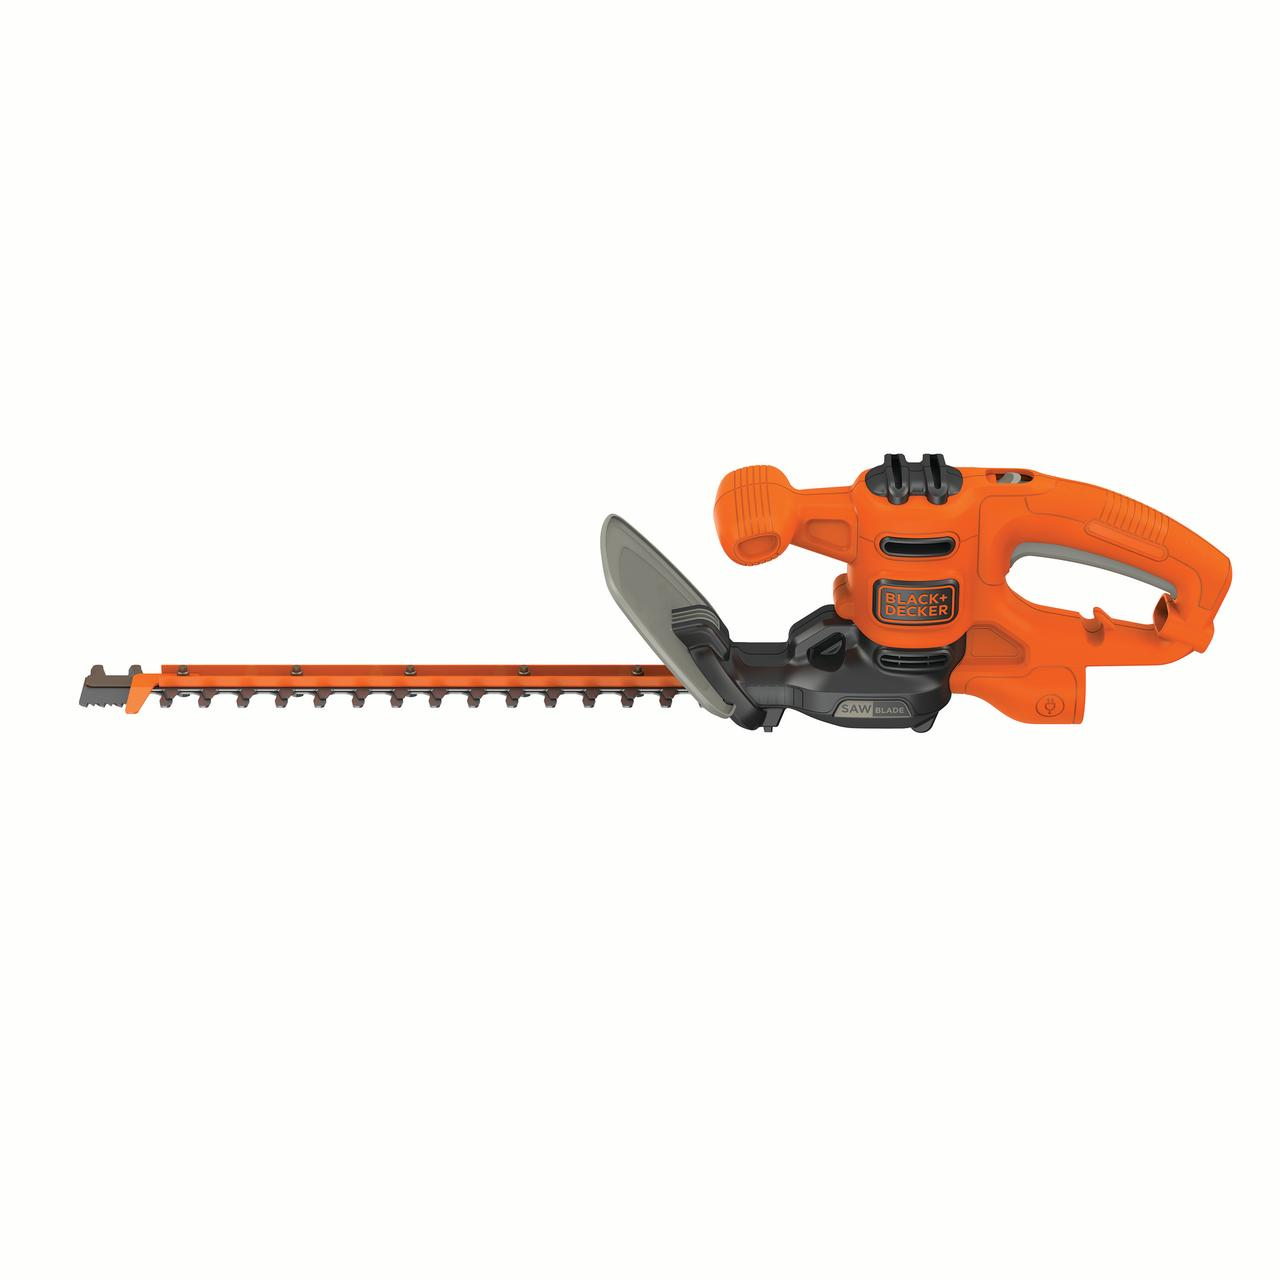 "Black & Decker BEHTS125 16"" Sawblade Corded Hedge Trimmer by Stanley Black & Decker"